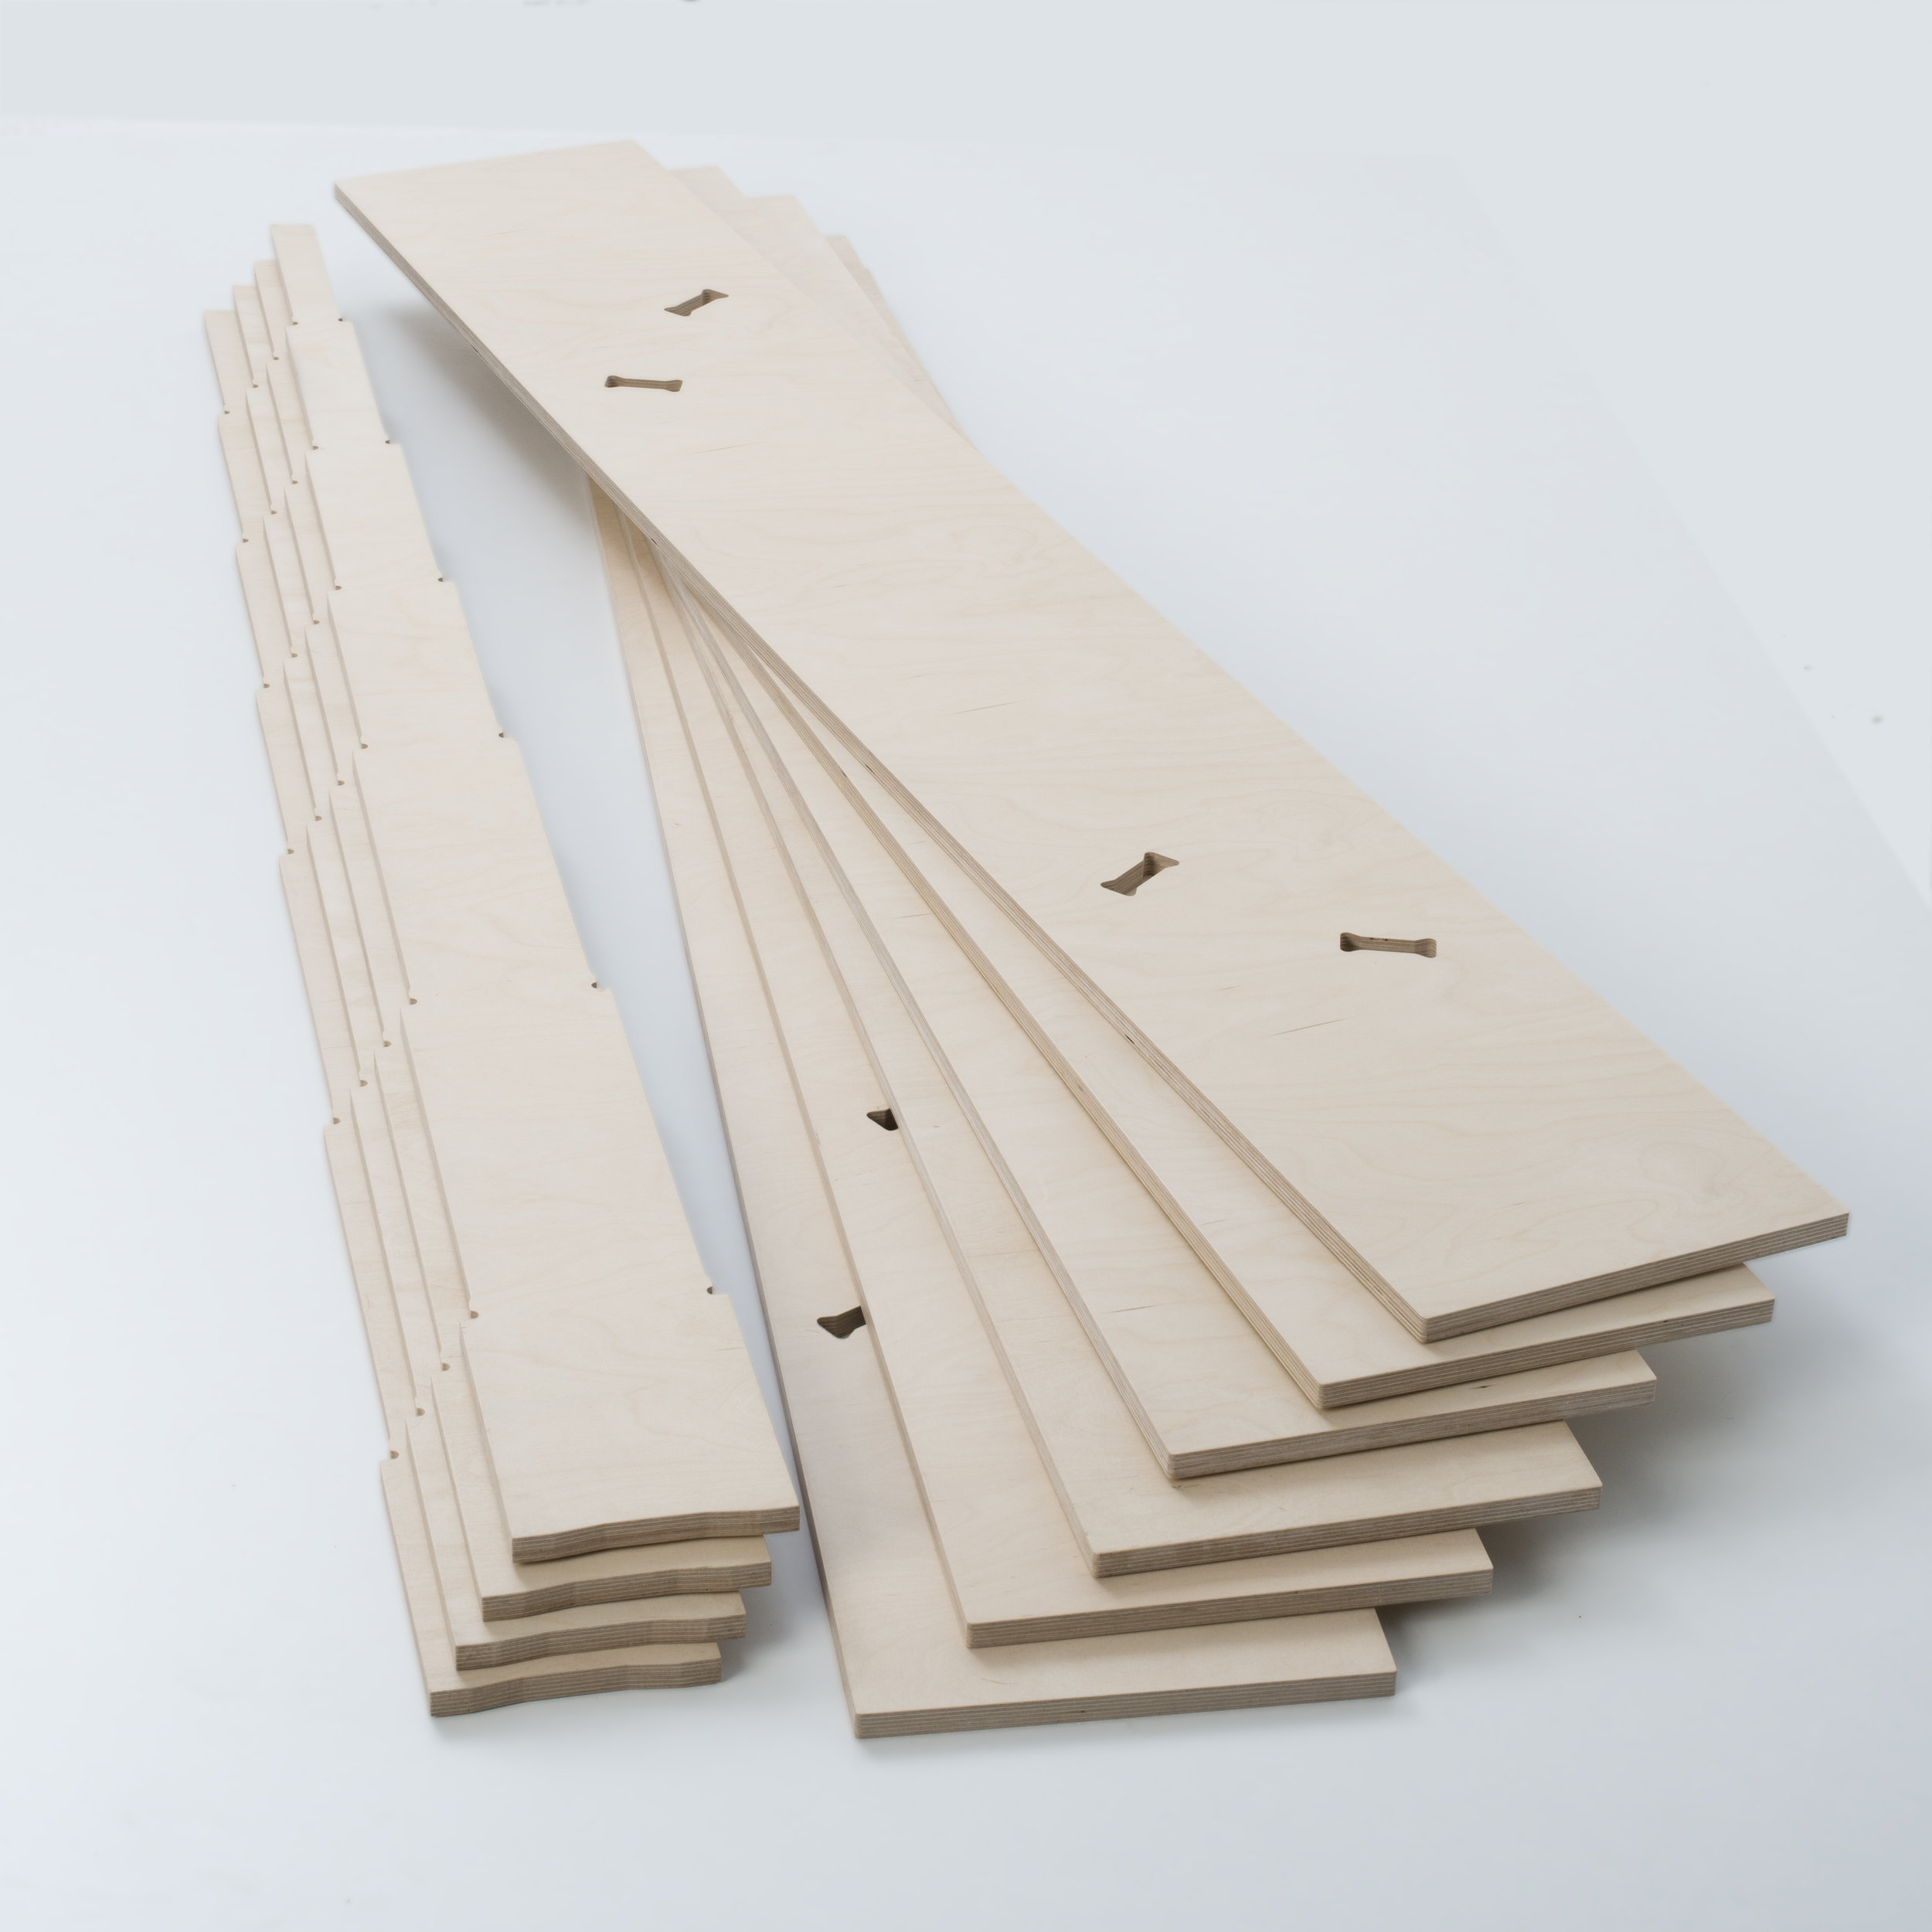 FIT_Furniture-Forest_Shelf_parts-Ronen_Kadushin